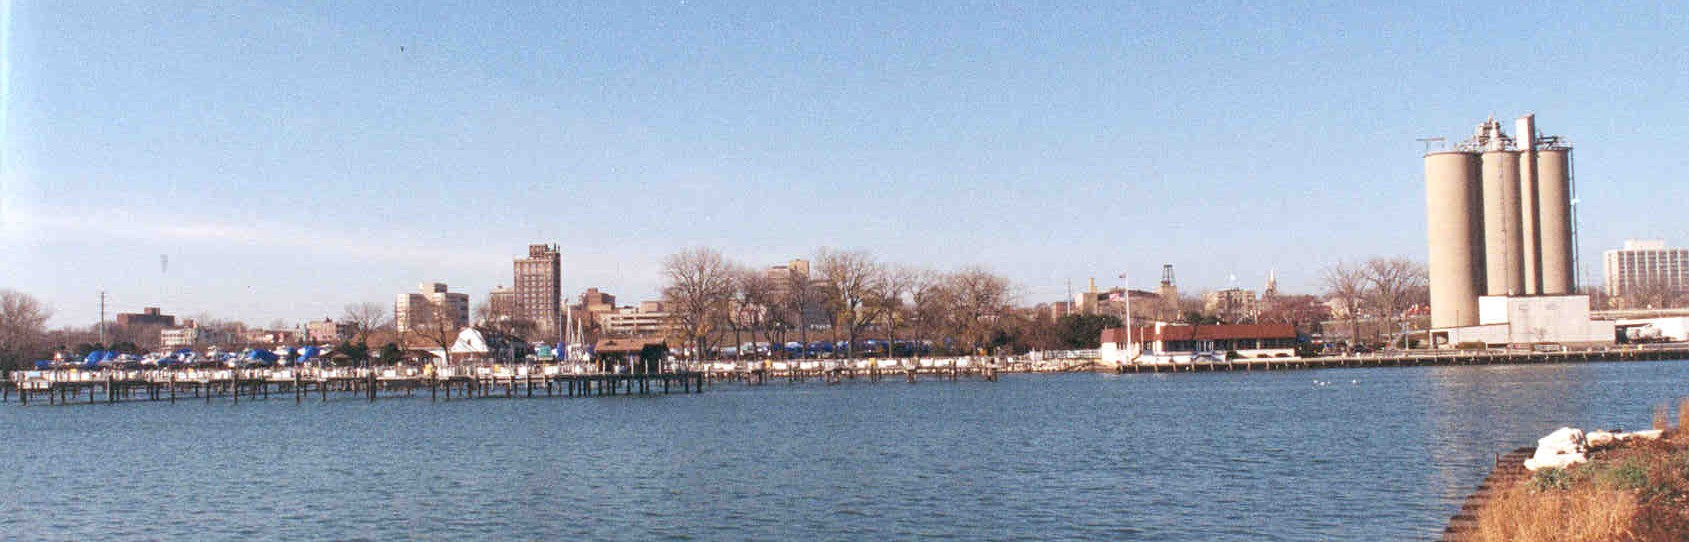 Waukegan Harbor Citizens' Advisory Group (Waukegan Harbor CAG)